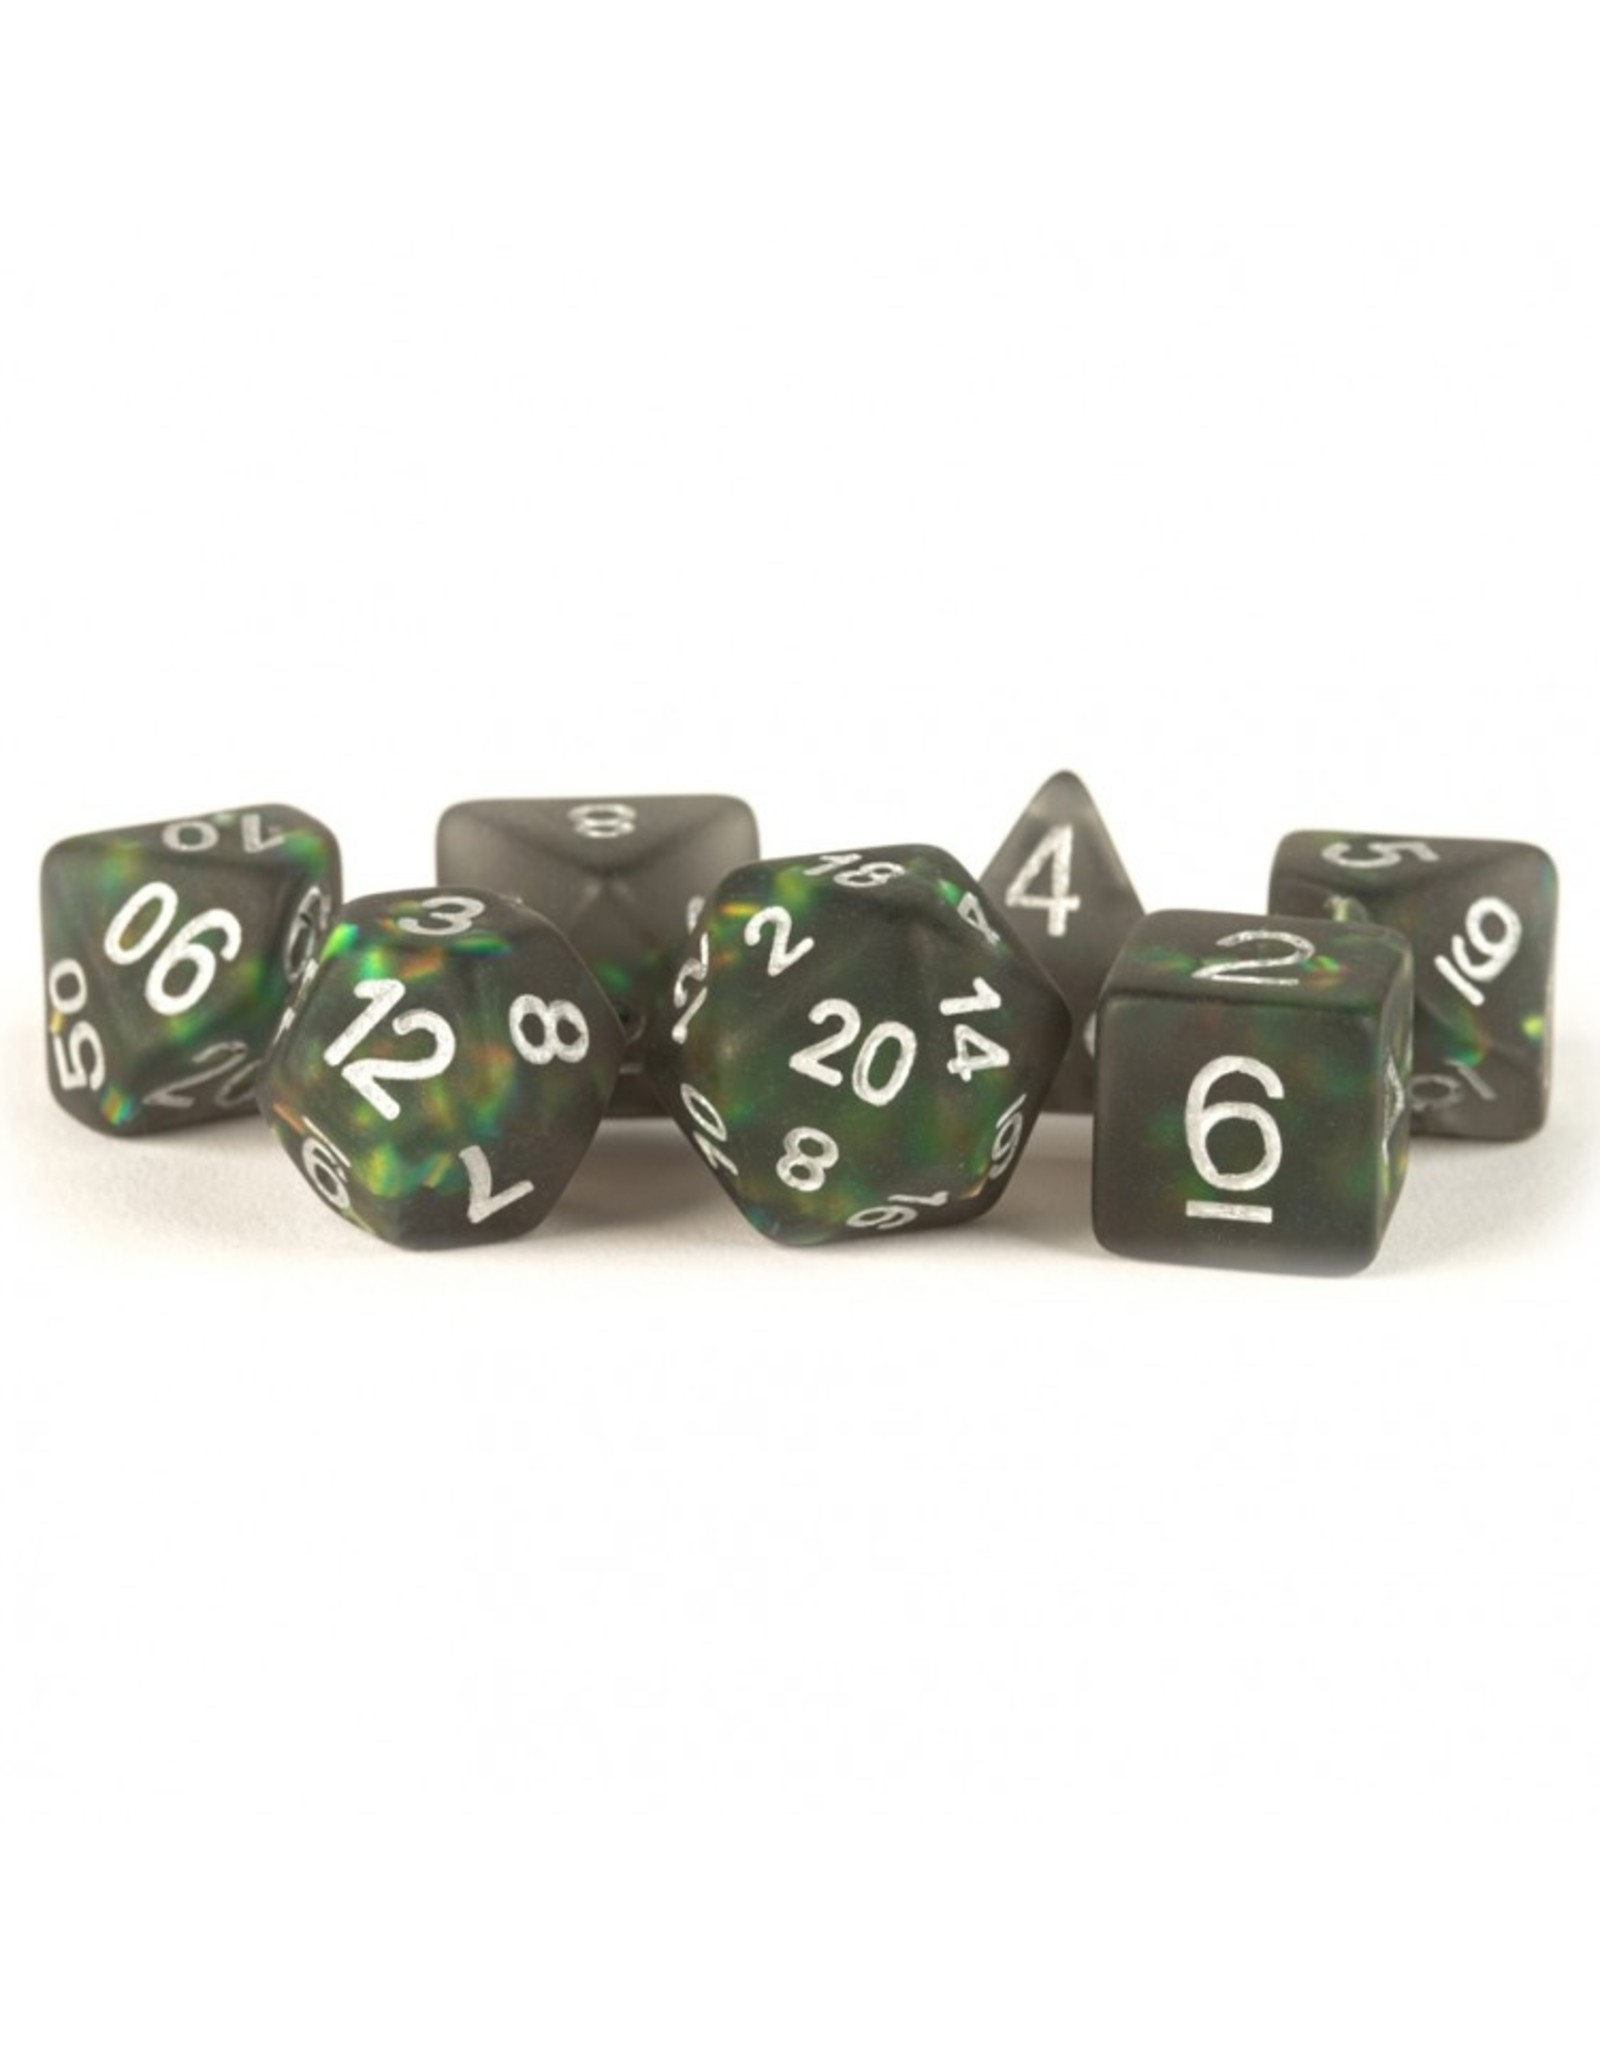 Dice 7-Set: Icy Opal BKsv